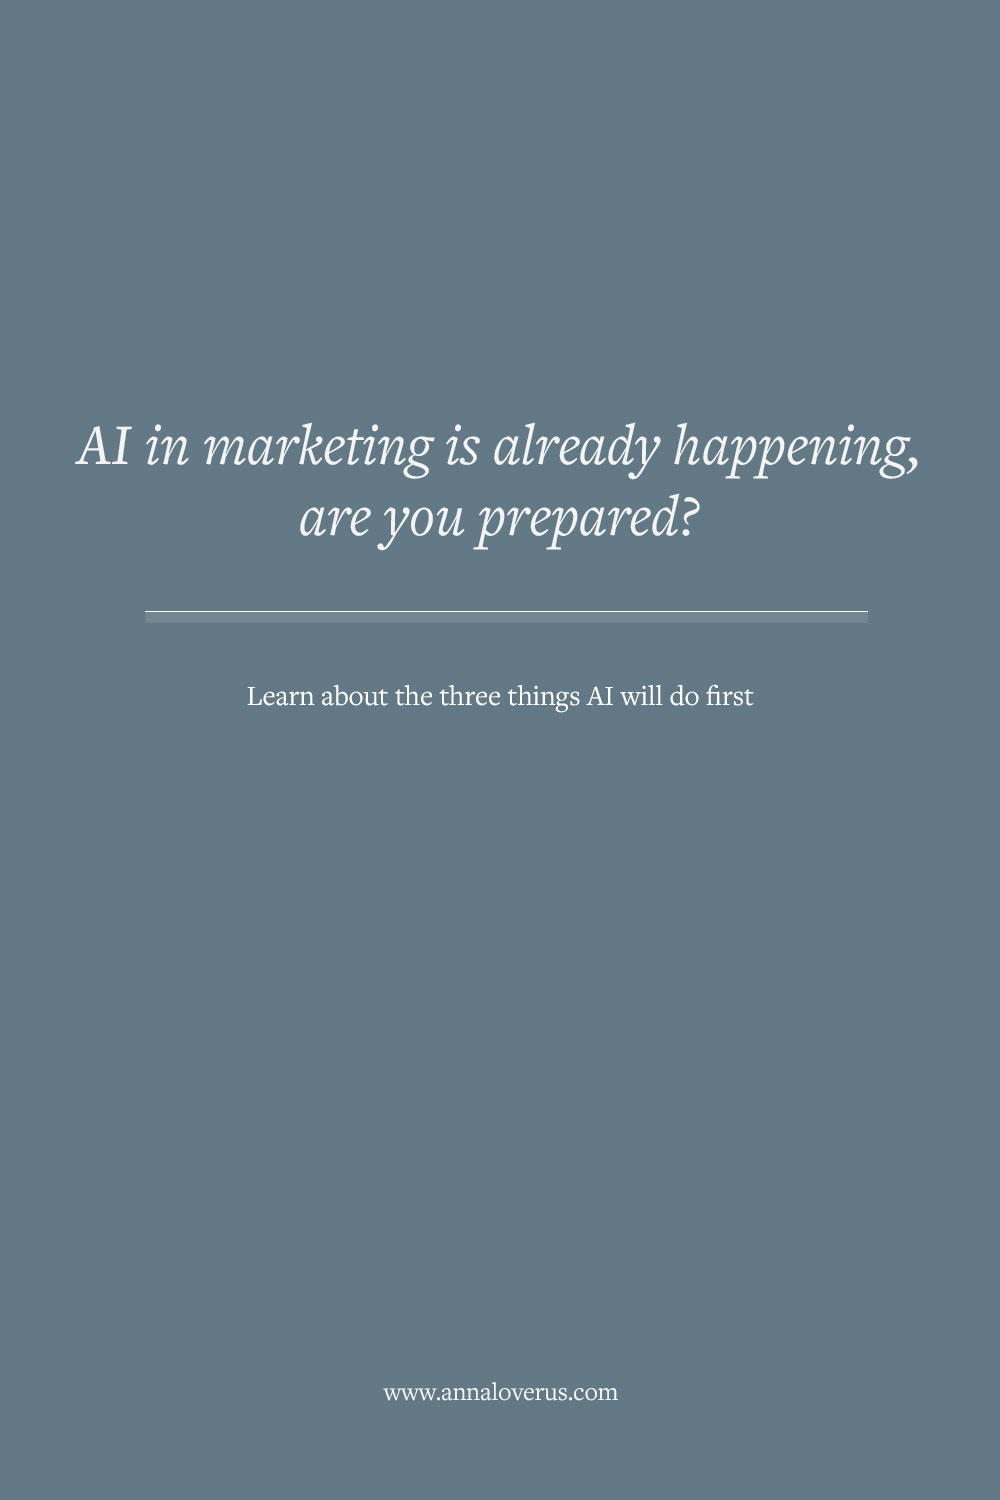 Marketing will be one of the first fields getting a massive make-over from AI. Here are three ways AI in marketing is already happening.